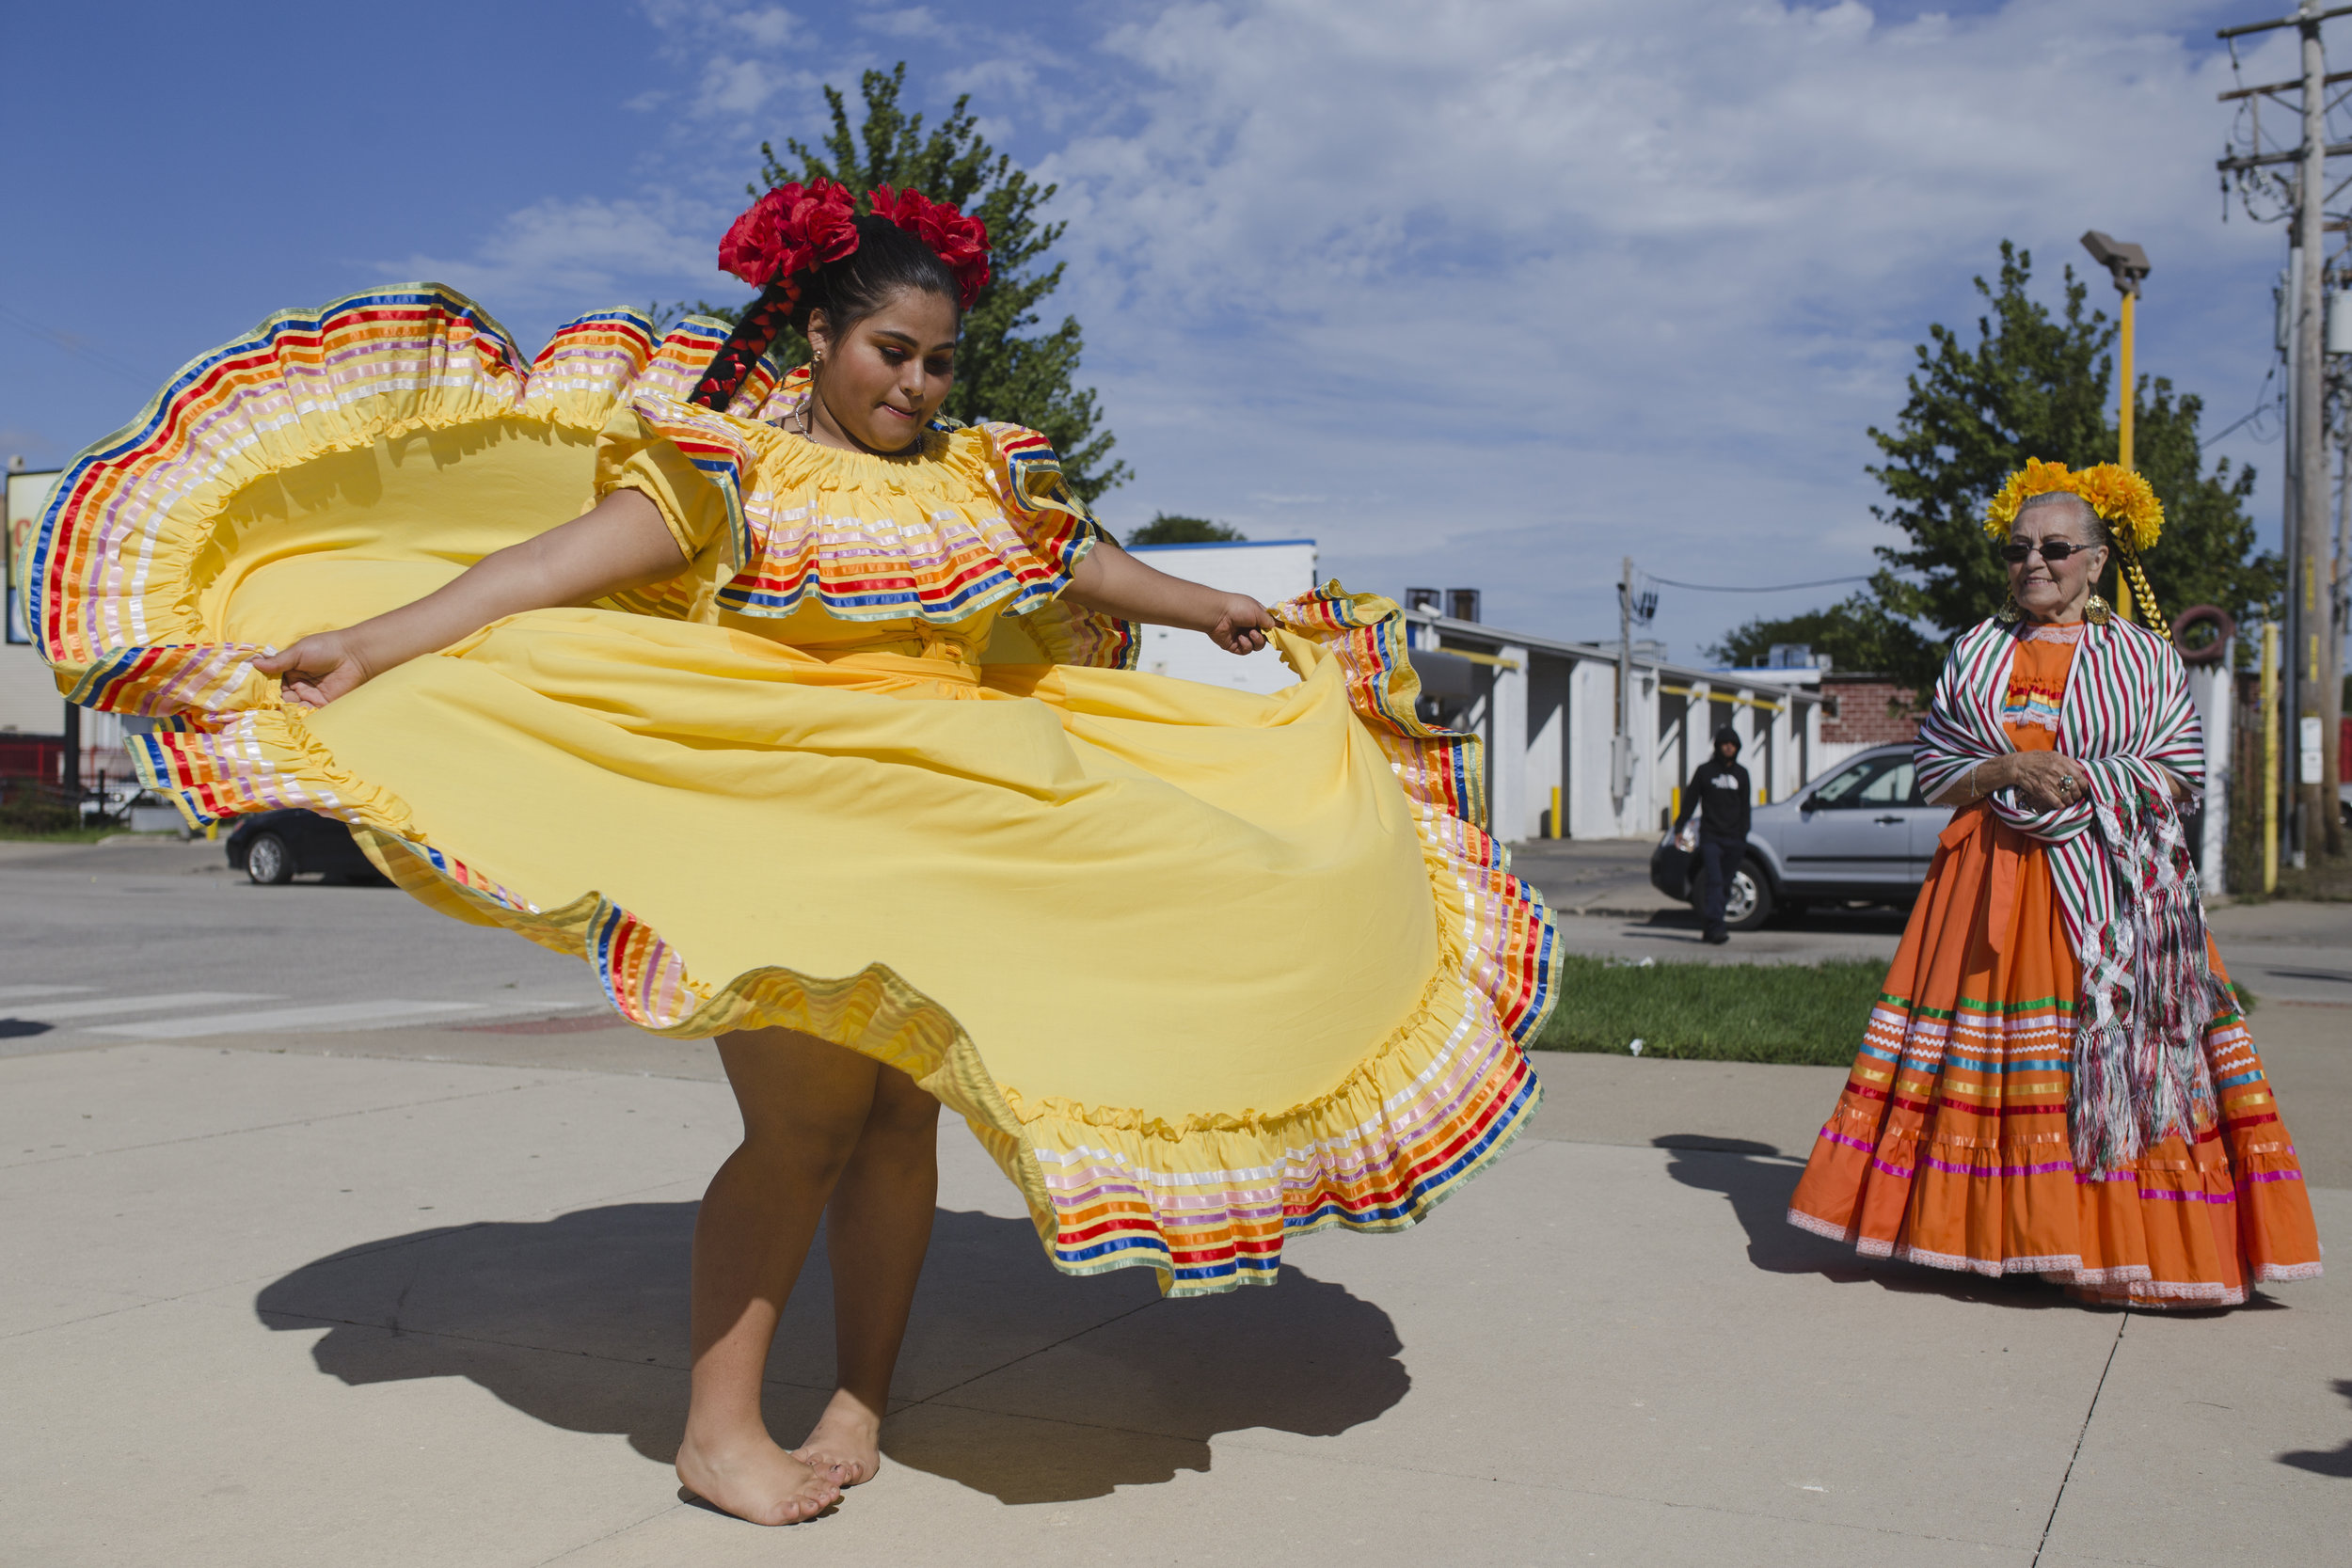 Monica Gonzales twirls for the camera after hours of dancing in high heels during the parade.